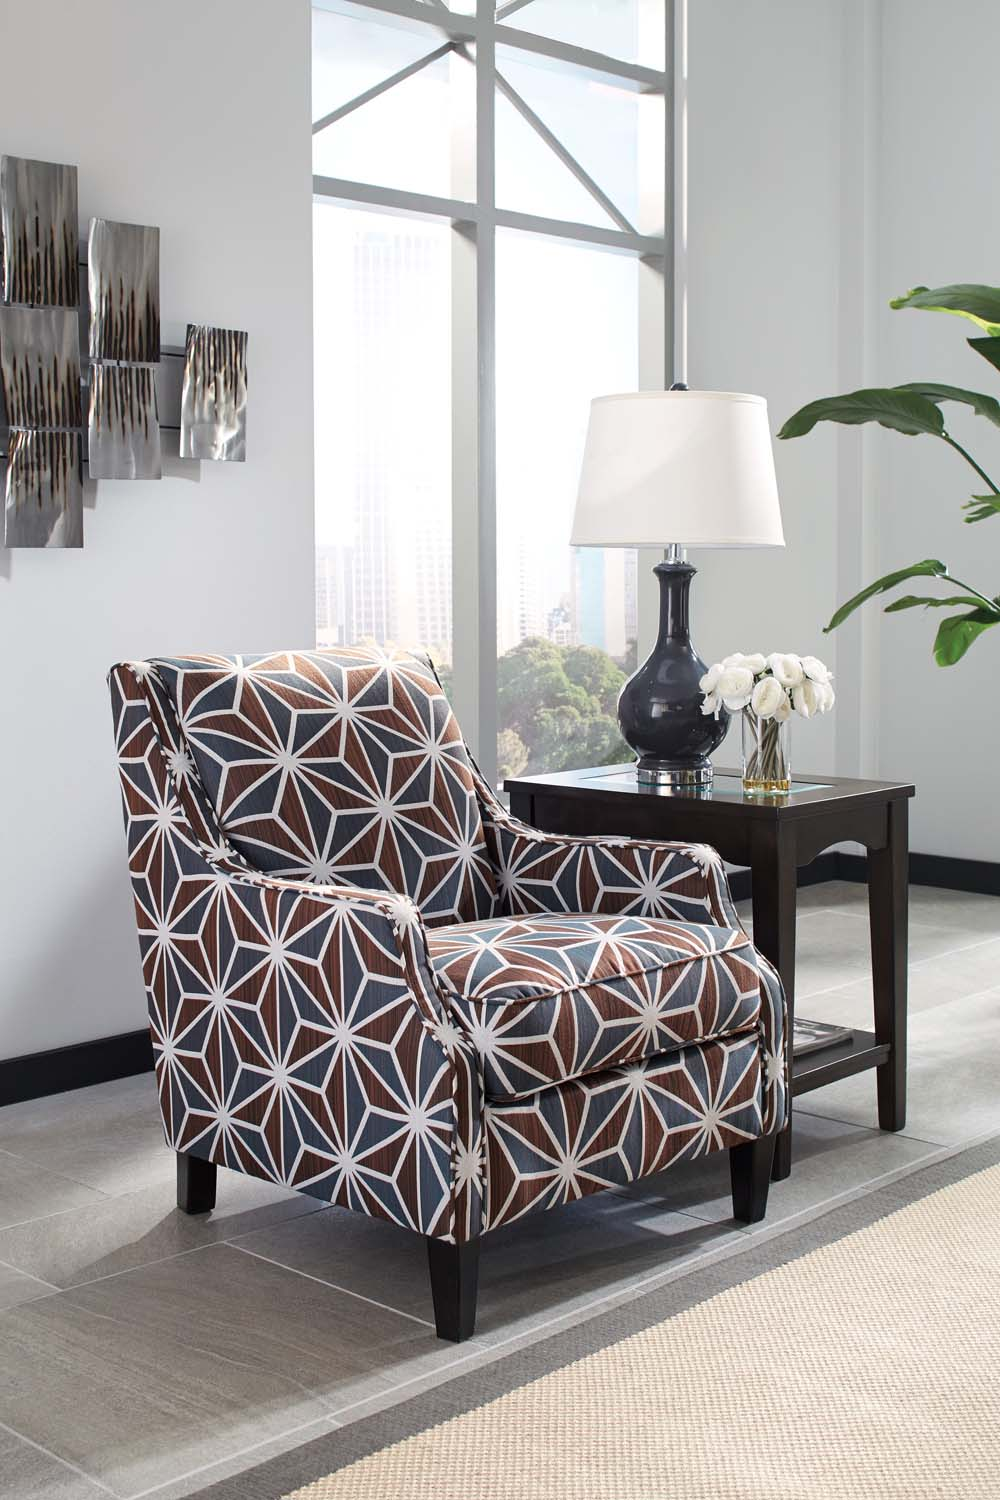 8410221ashley Furniture Accent Chair Westco Home Furnishings